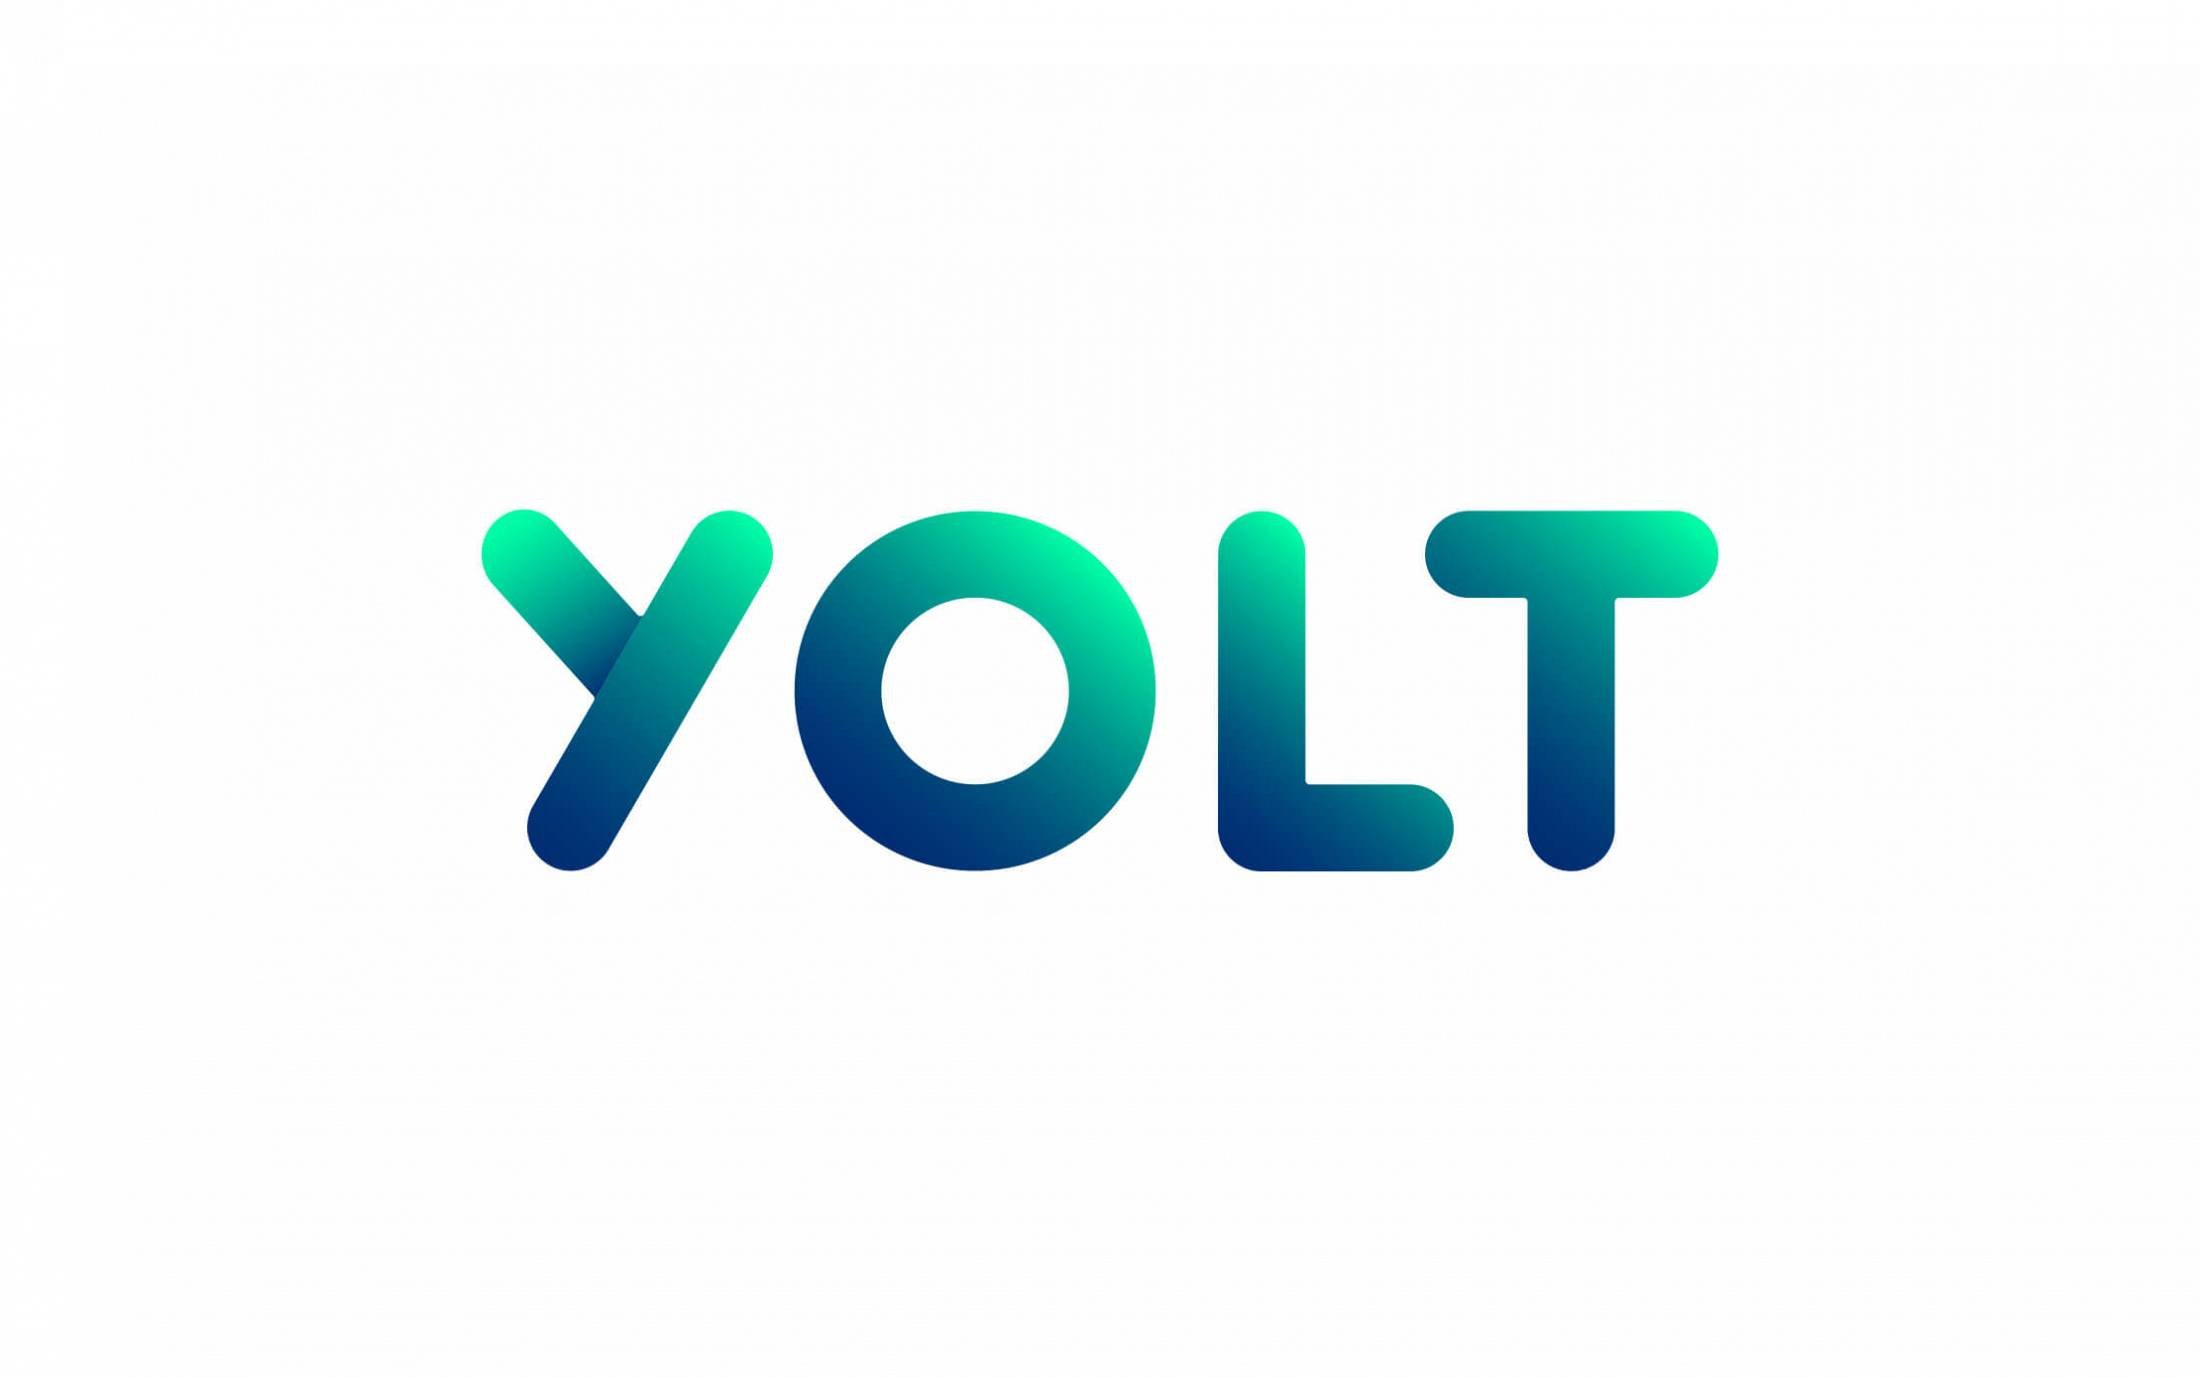 Yolt celebrates two year anniversary of Open Banking by extending Yolt Pay feature to Monzo account holders